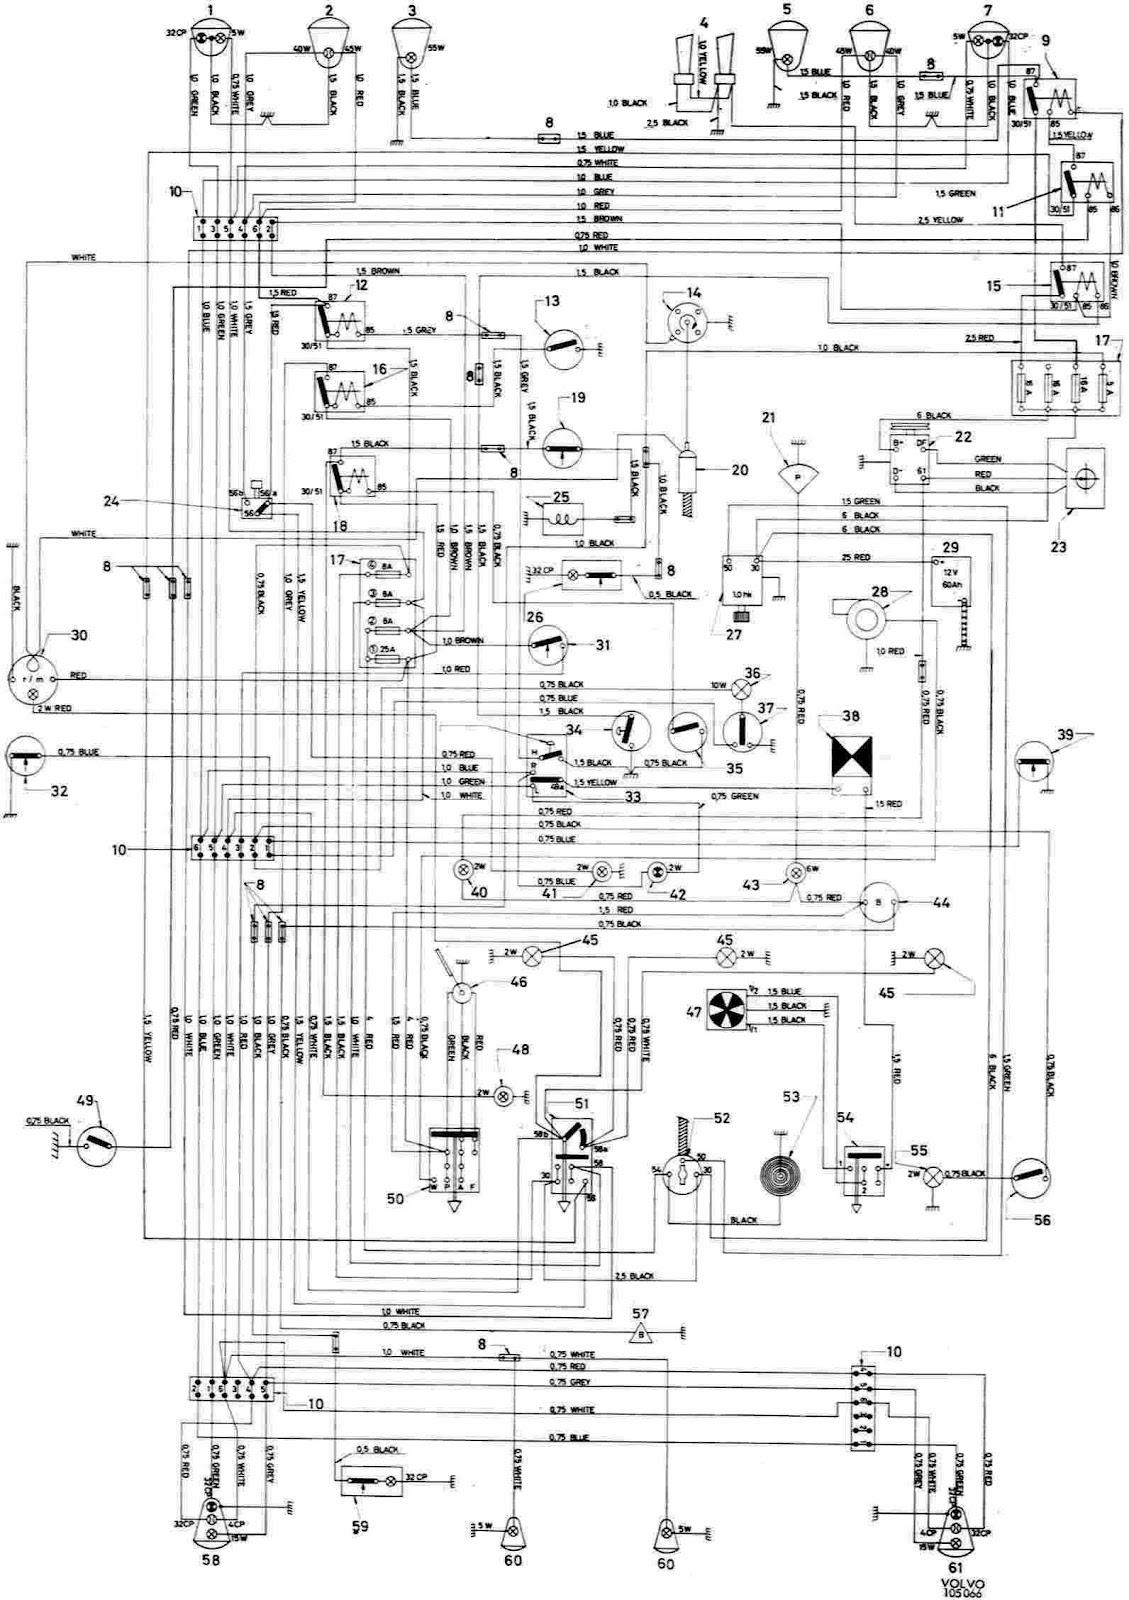 Wiring Diagram Volvo Amazon Everything About S80 Ignition Diagrams 740 Library Rh 8 Mac Happen De 240 Fuse Simple